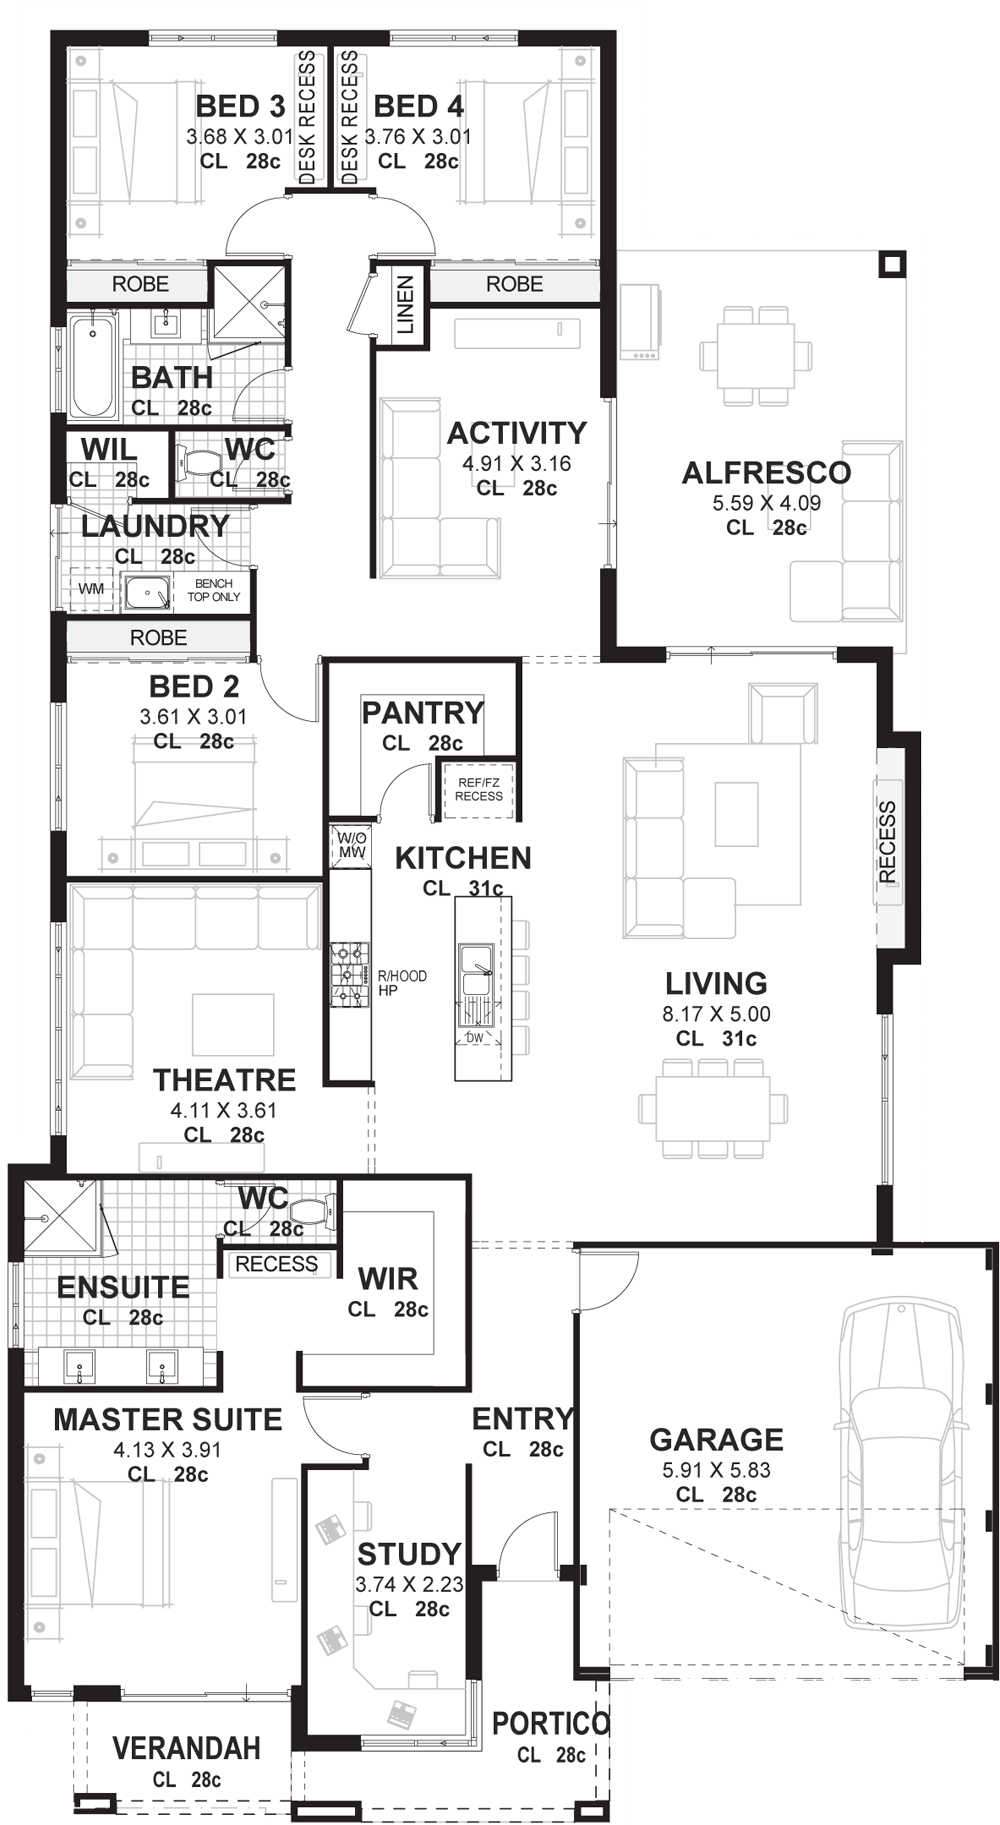 bedroom house plans home perth vision one homes storey also rh pinterest